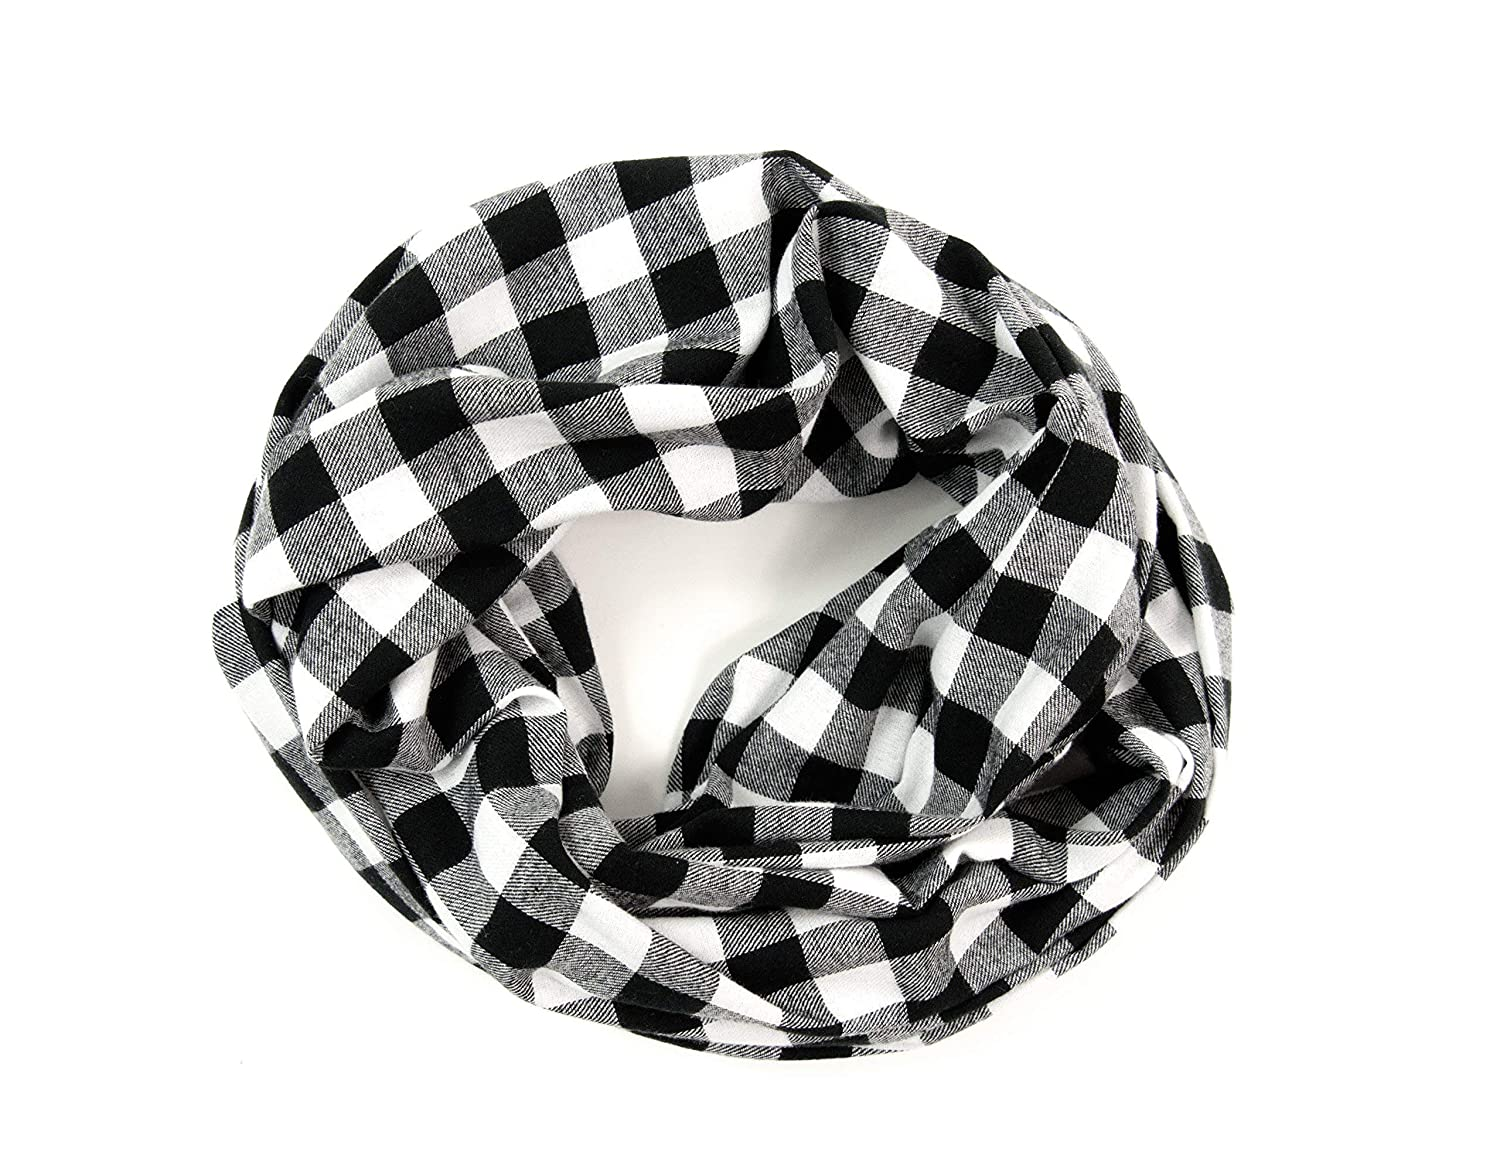 Flannel Buffalo Plaid Time sale Infinity White Max 62% OFF Scarf and Black